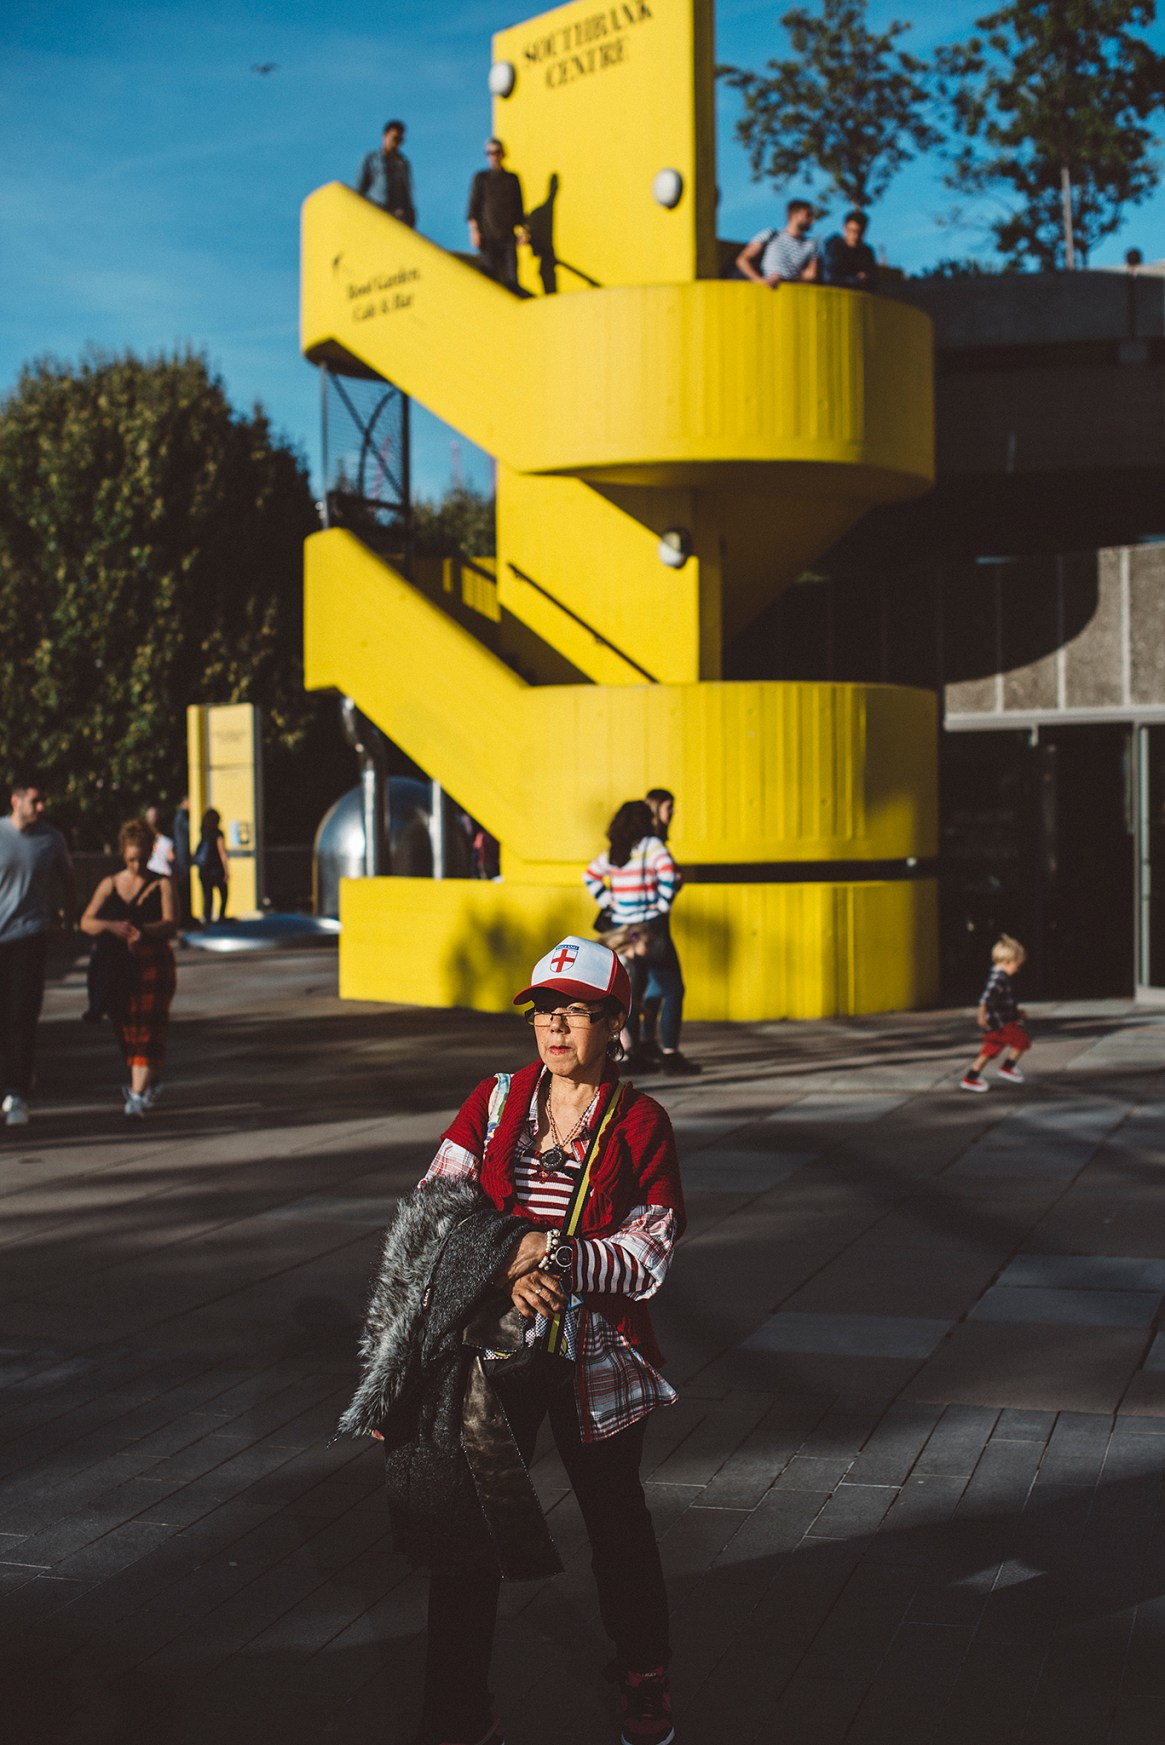 A woman wearing red and white walks past a bright yellow staircase at sunset on the South Bank in London